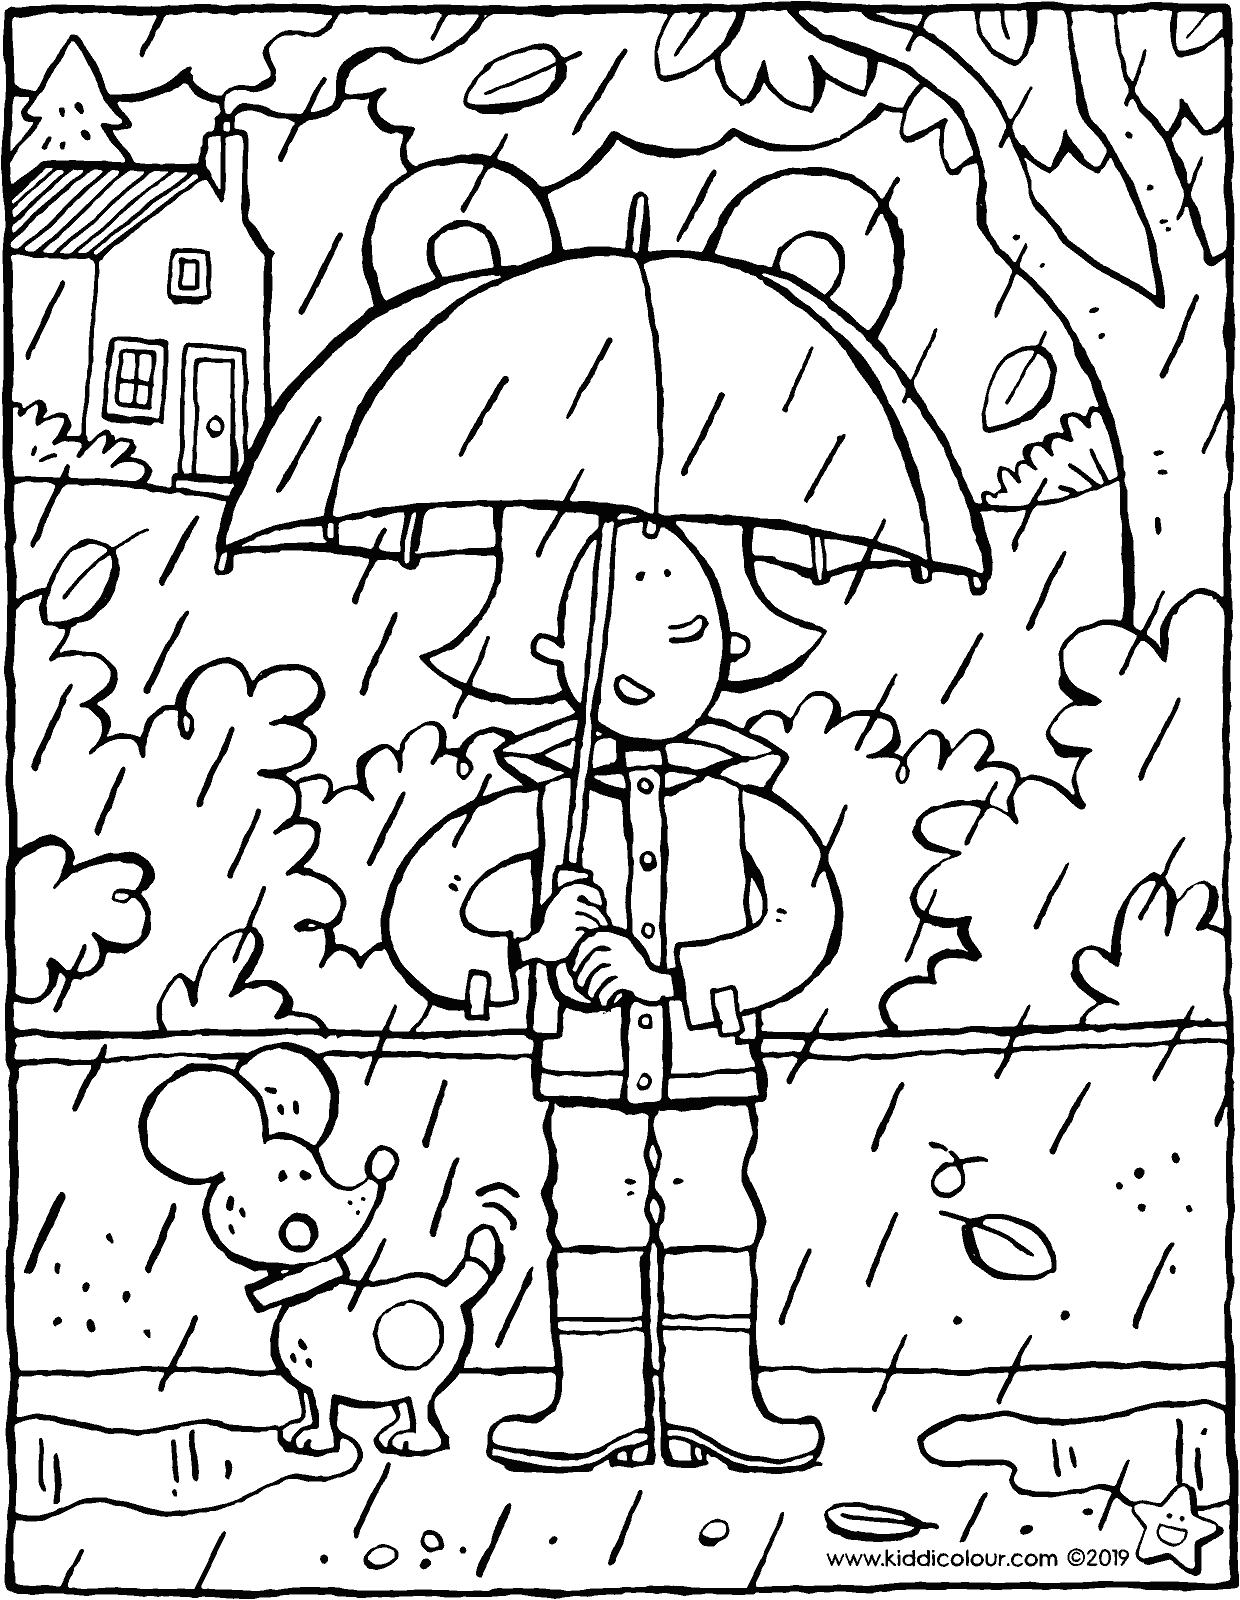 Emma with an umbrella on a rainy autumn day - colouring page drawing picture 01V